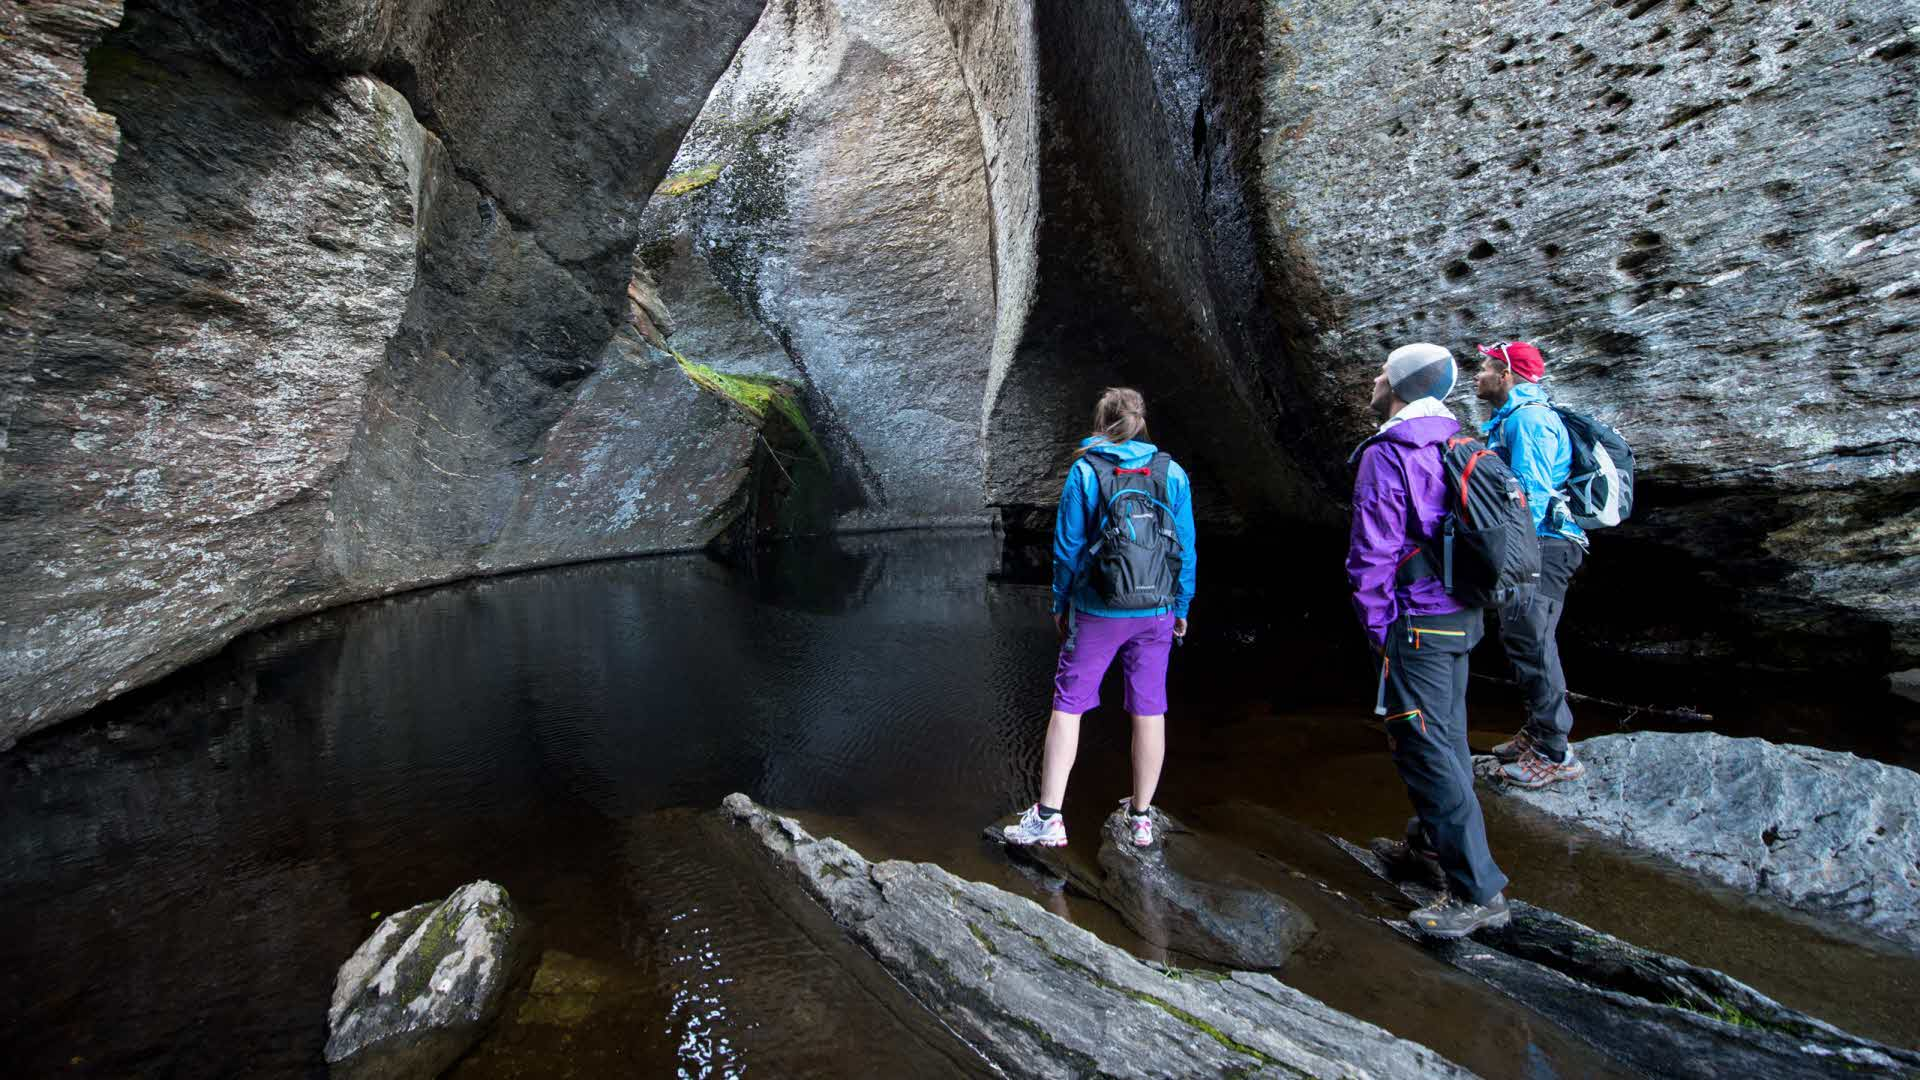 3 hikers standing beside the waterfront of an open-air cave in Aurland Valley in autumn called Vetla Helvete (Little Hell)